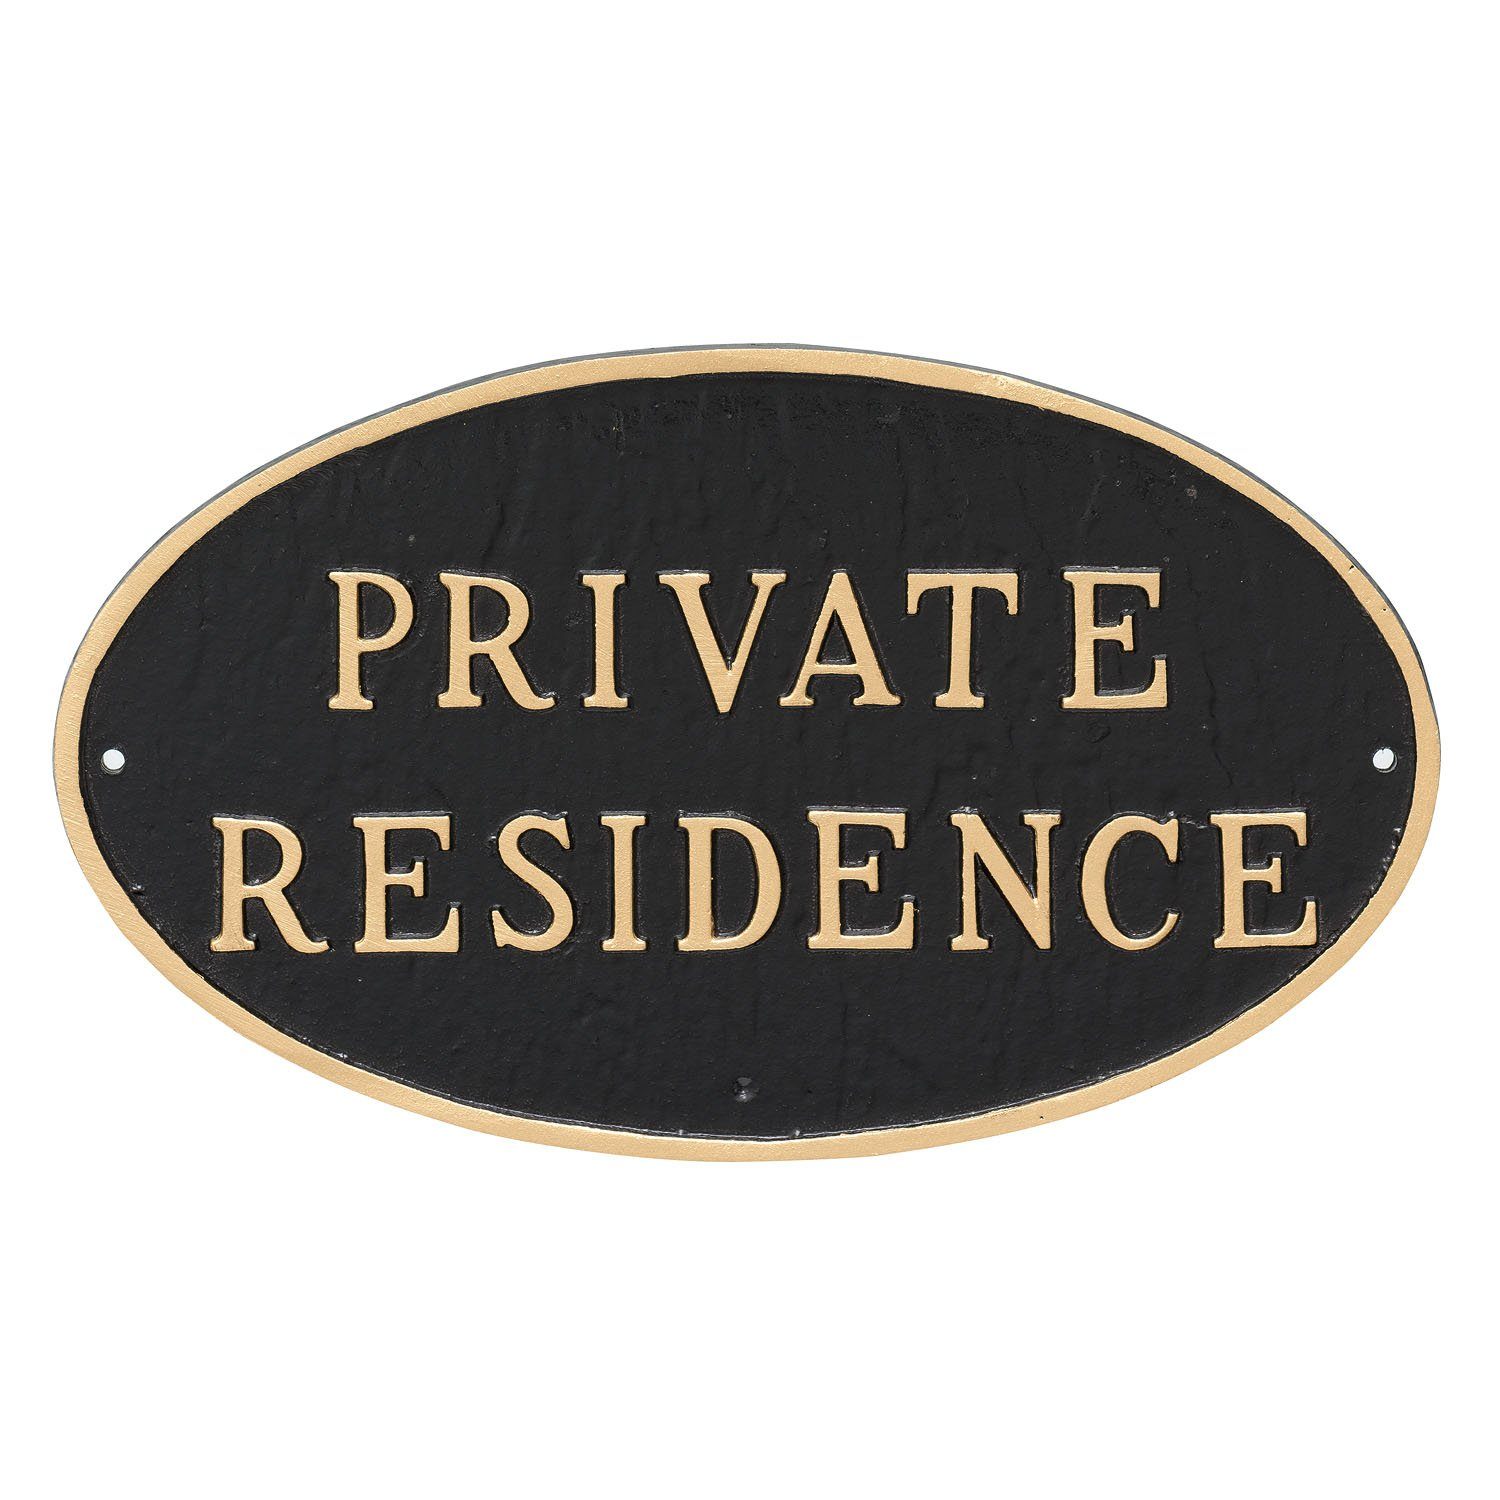 Montague Metal Products Oval Private Residence Statement Plaque Sign, Black with Gold Lettering, 6'' x 10''